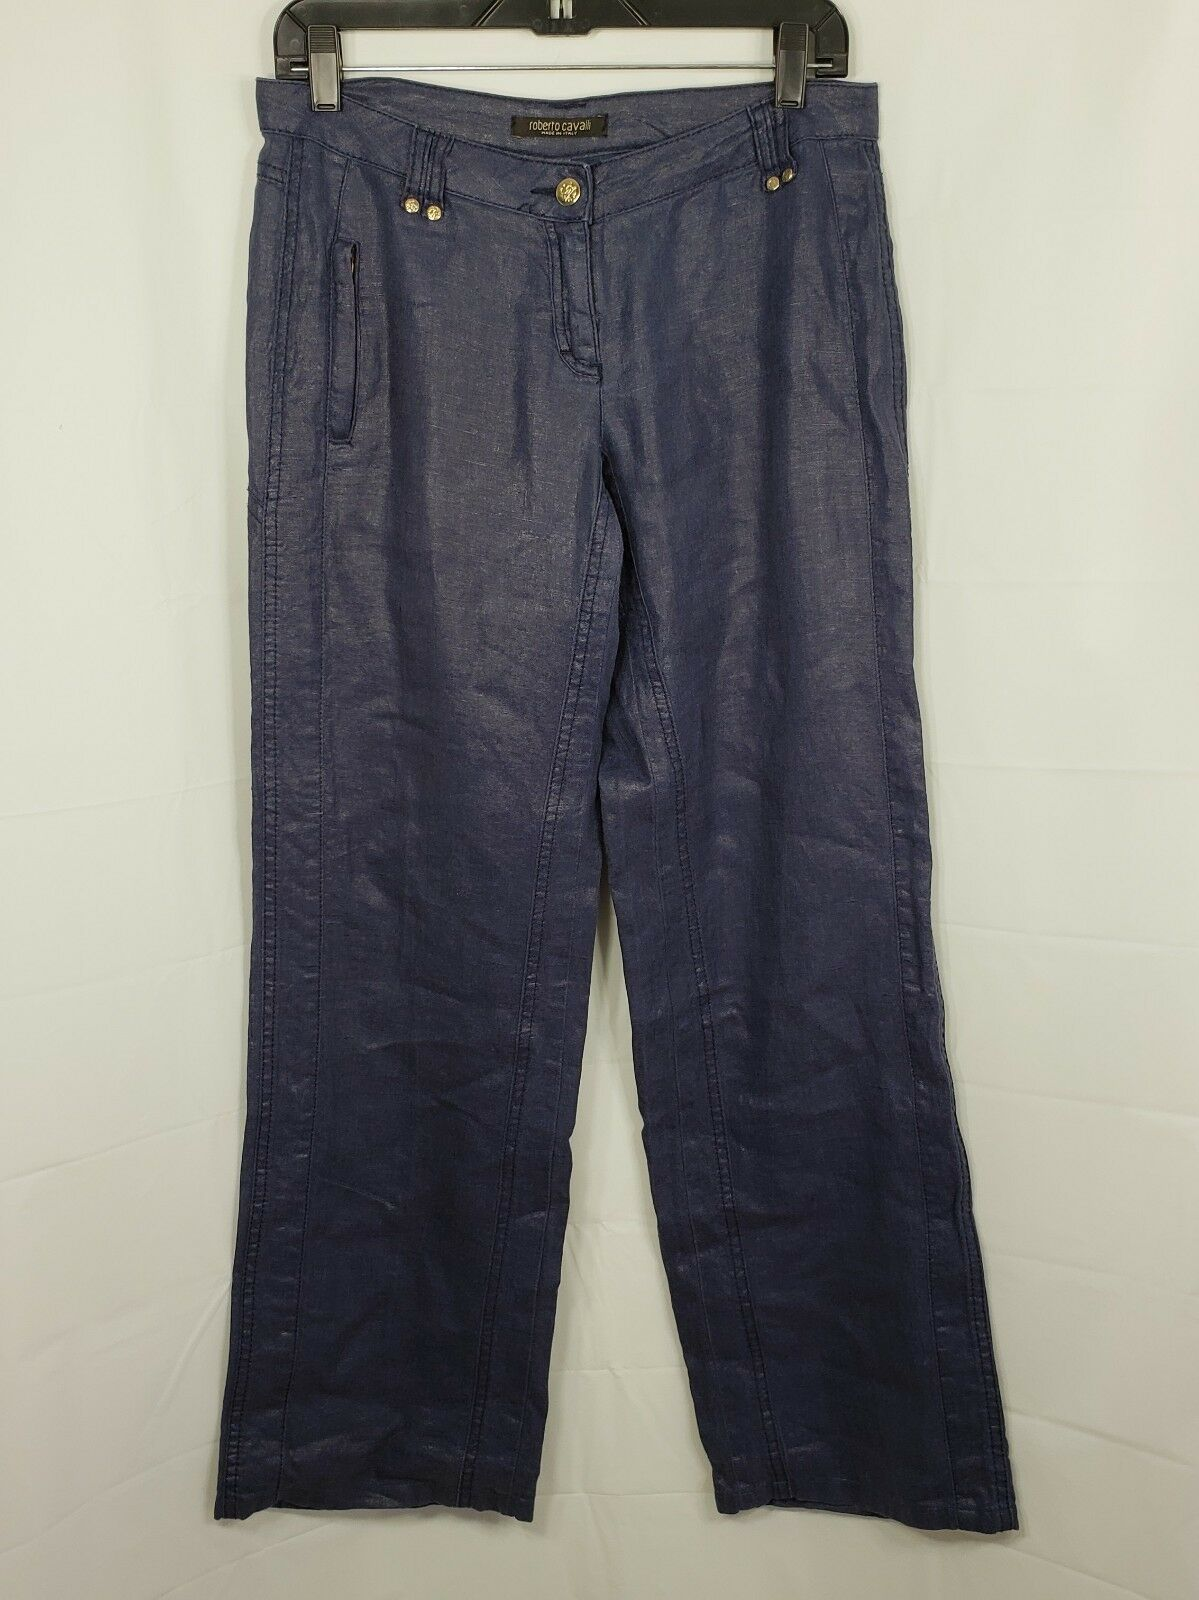 ROBERTO CAVALLI Womens Dark bluee Linen Pants gold Tone Buttons  Size 26